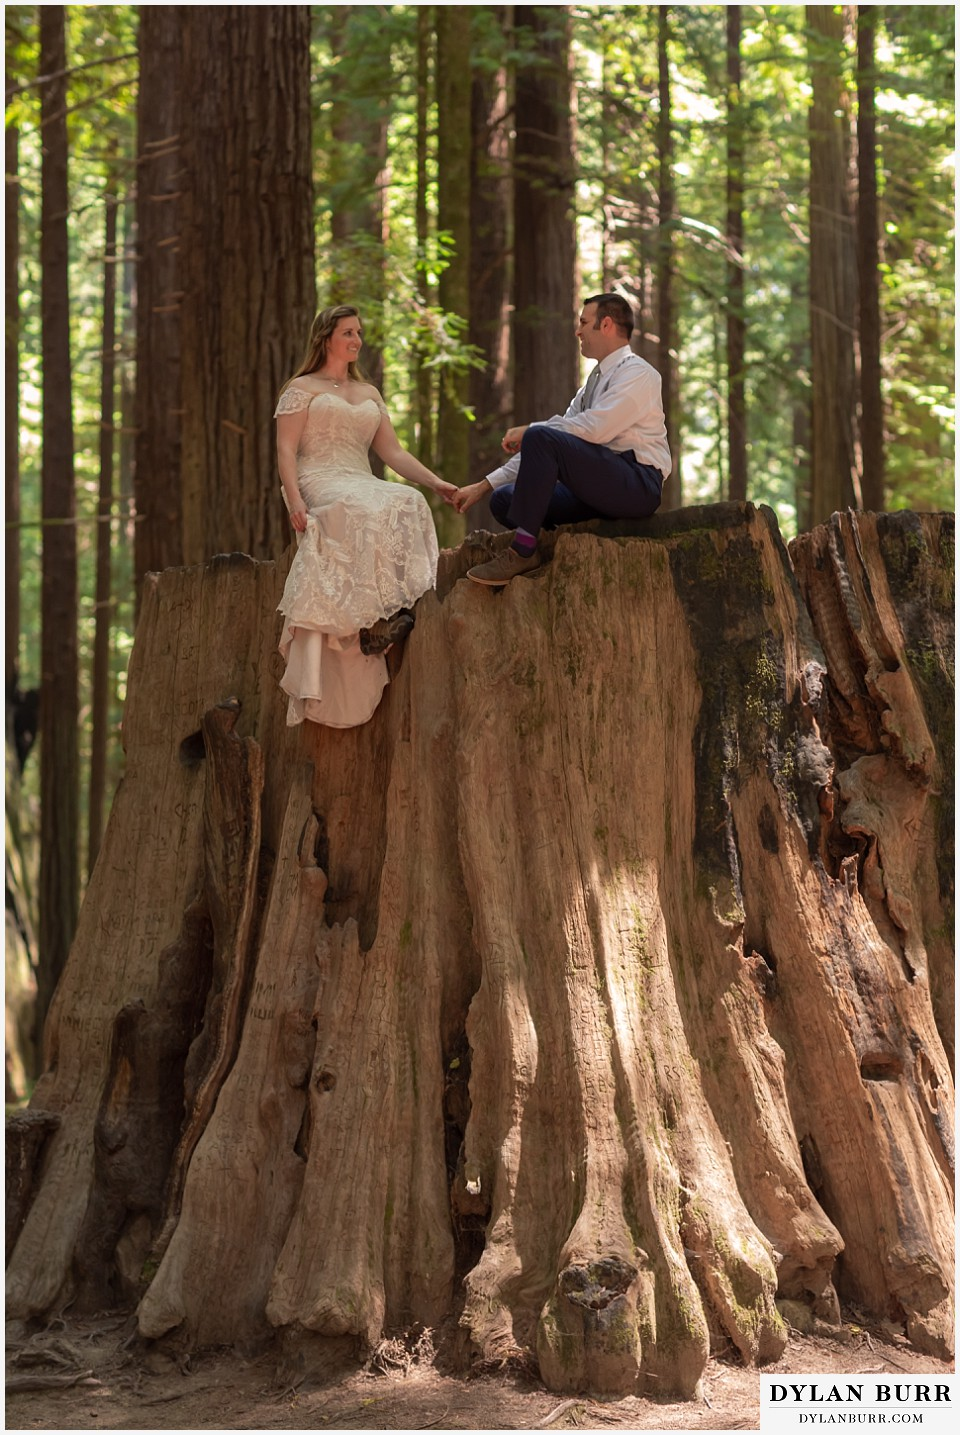 redwood forest wedding elopement avenue of the giants california bride and groom sitting on giant tree stump